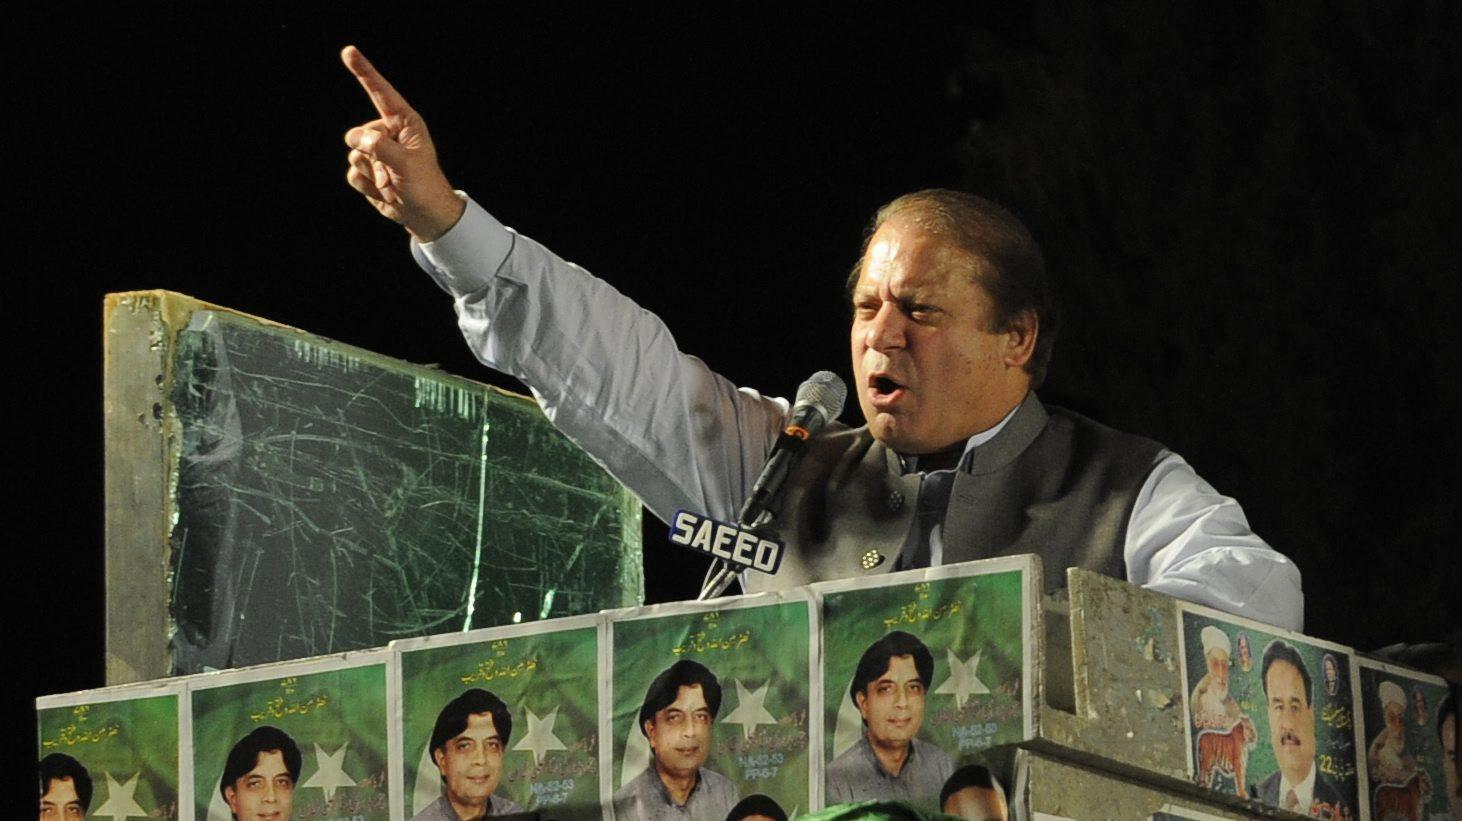 challenges for nawaz sharif government Yemeni government in peace offensive  husband to challenge verdict, sharif lands in 'b' class jail  nawaz sharif and his political heir maryam were arrested at the lahore airport late .